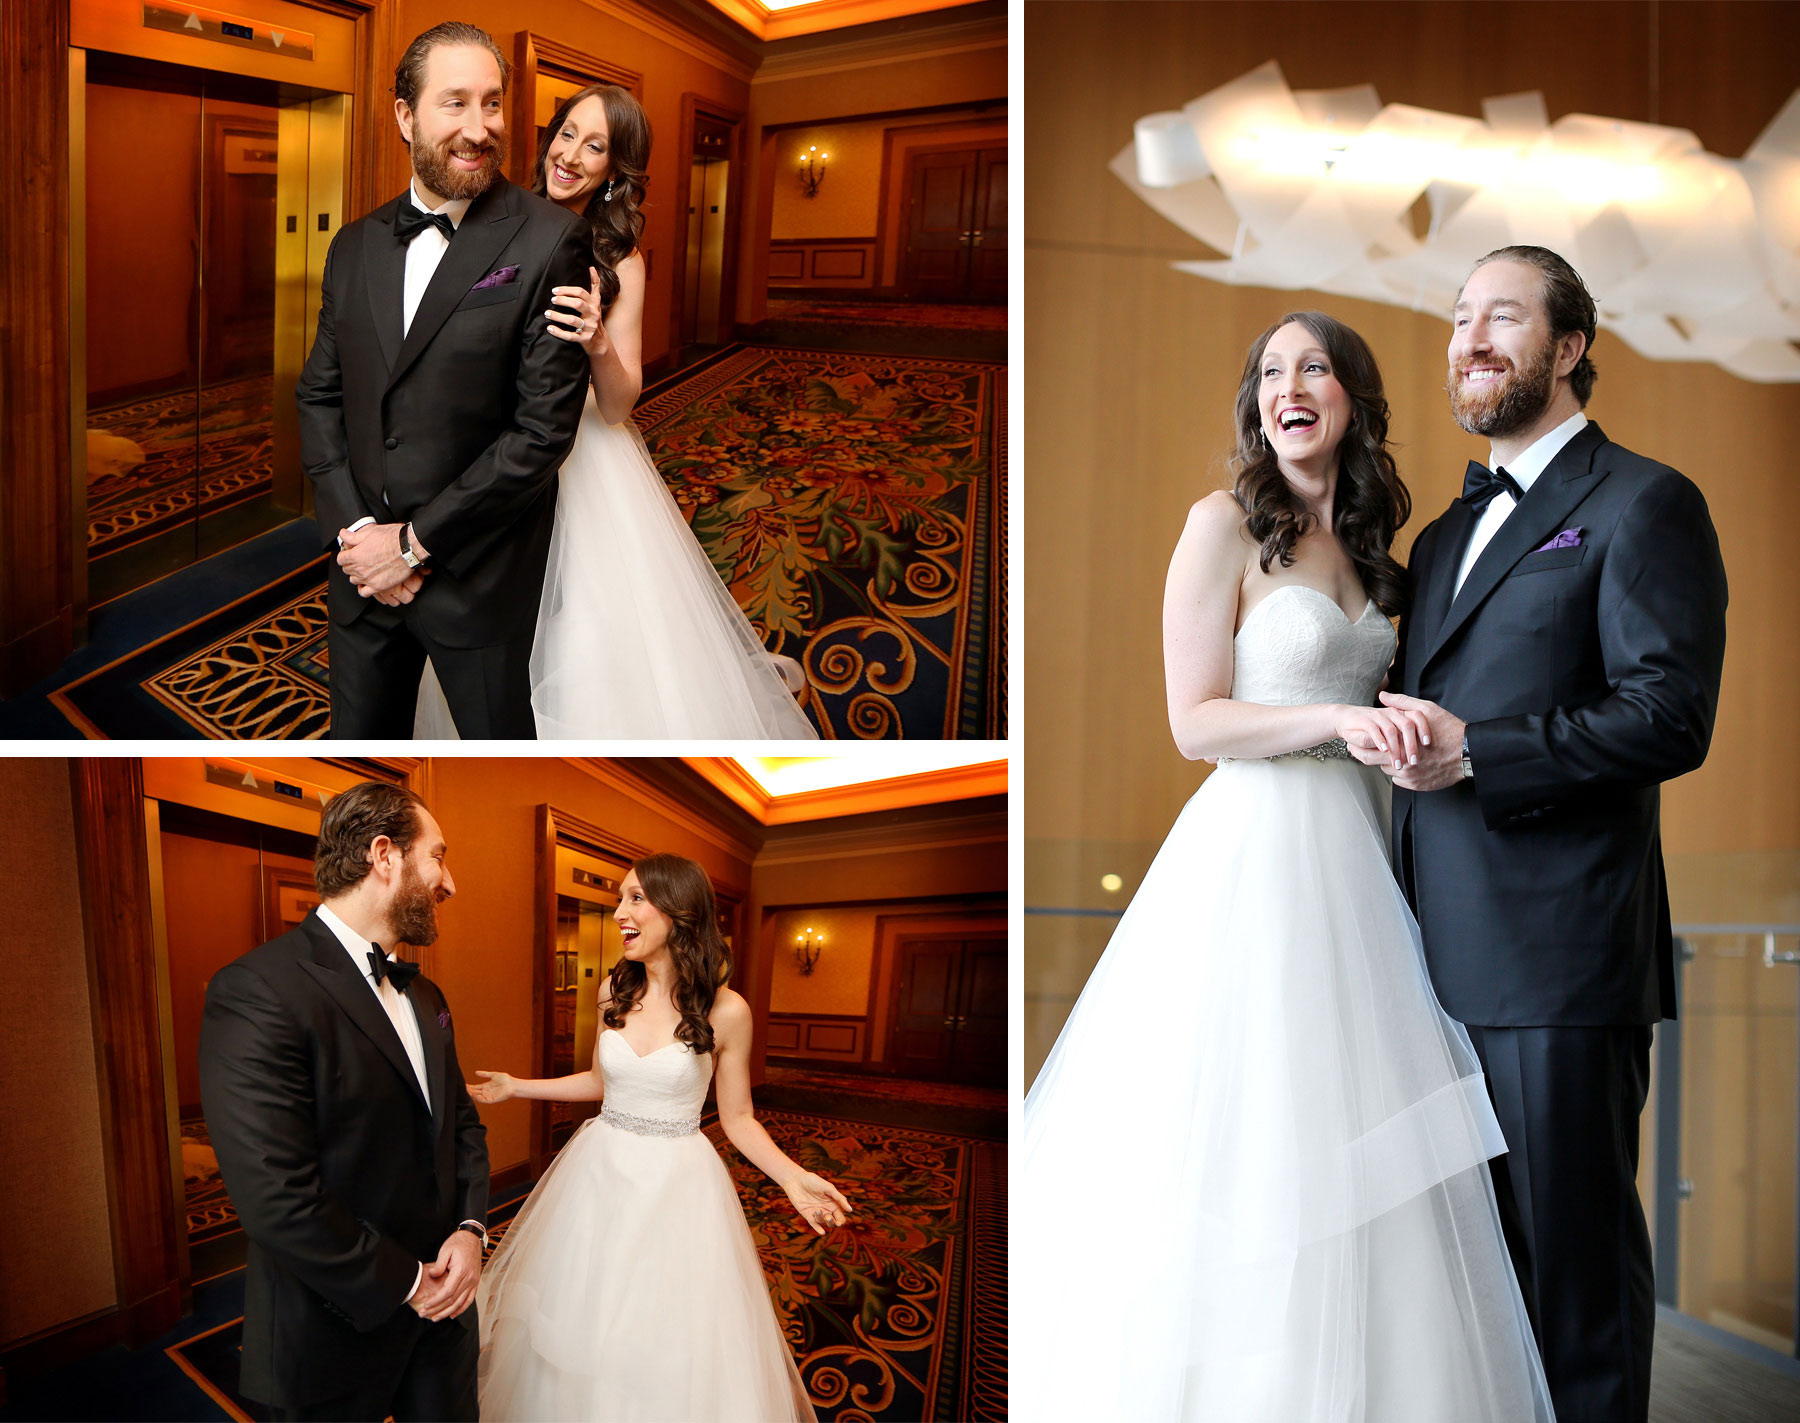 02-Minneapolis-Minnesota-Wedding-Photography-by-Vick-Photography-Hilton-Downtown-First-Look-Lisa-and-Jared.jpg